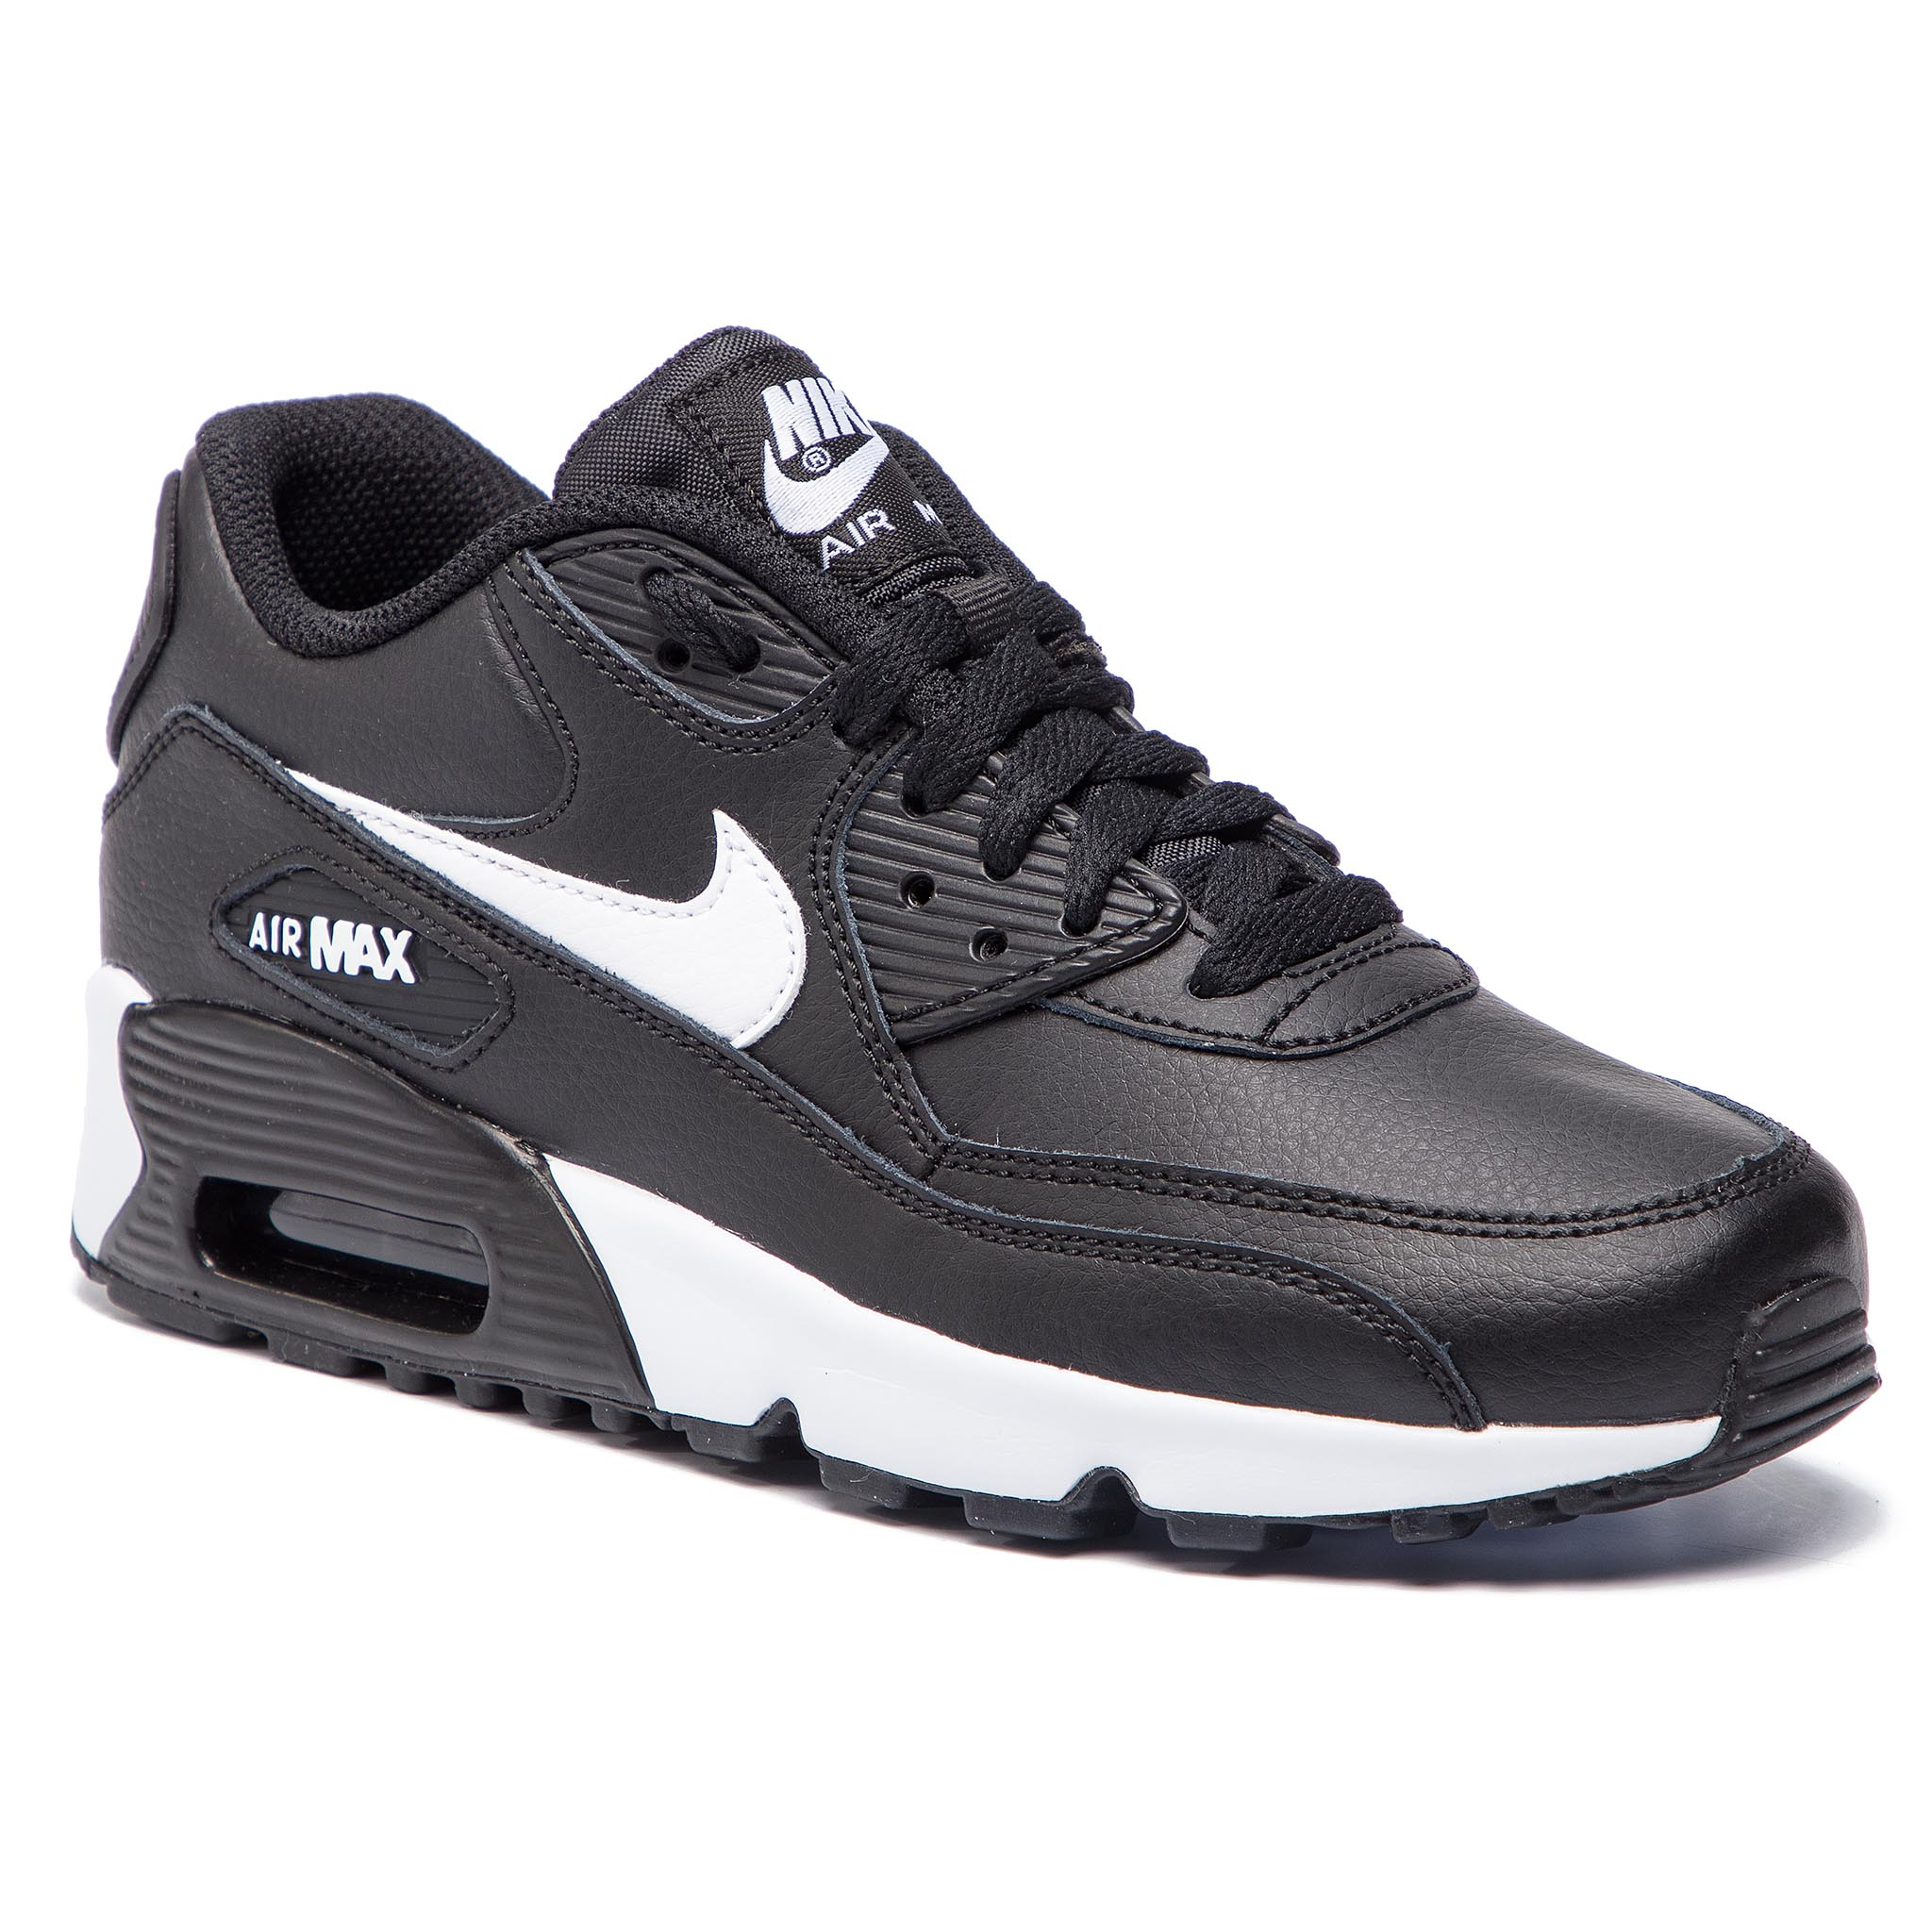 new arrival 02d9d 08339 Shoes NIKE Air Max 90 Ltr 90 (GS) 833412 025 Black Whit Antracite